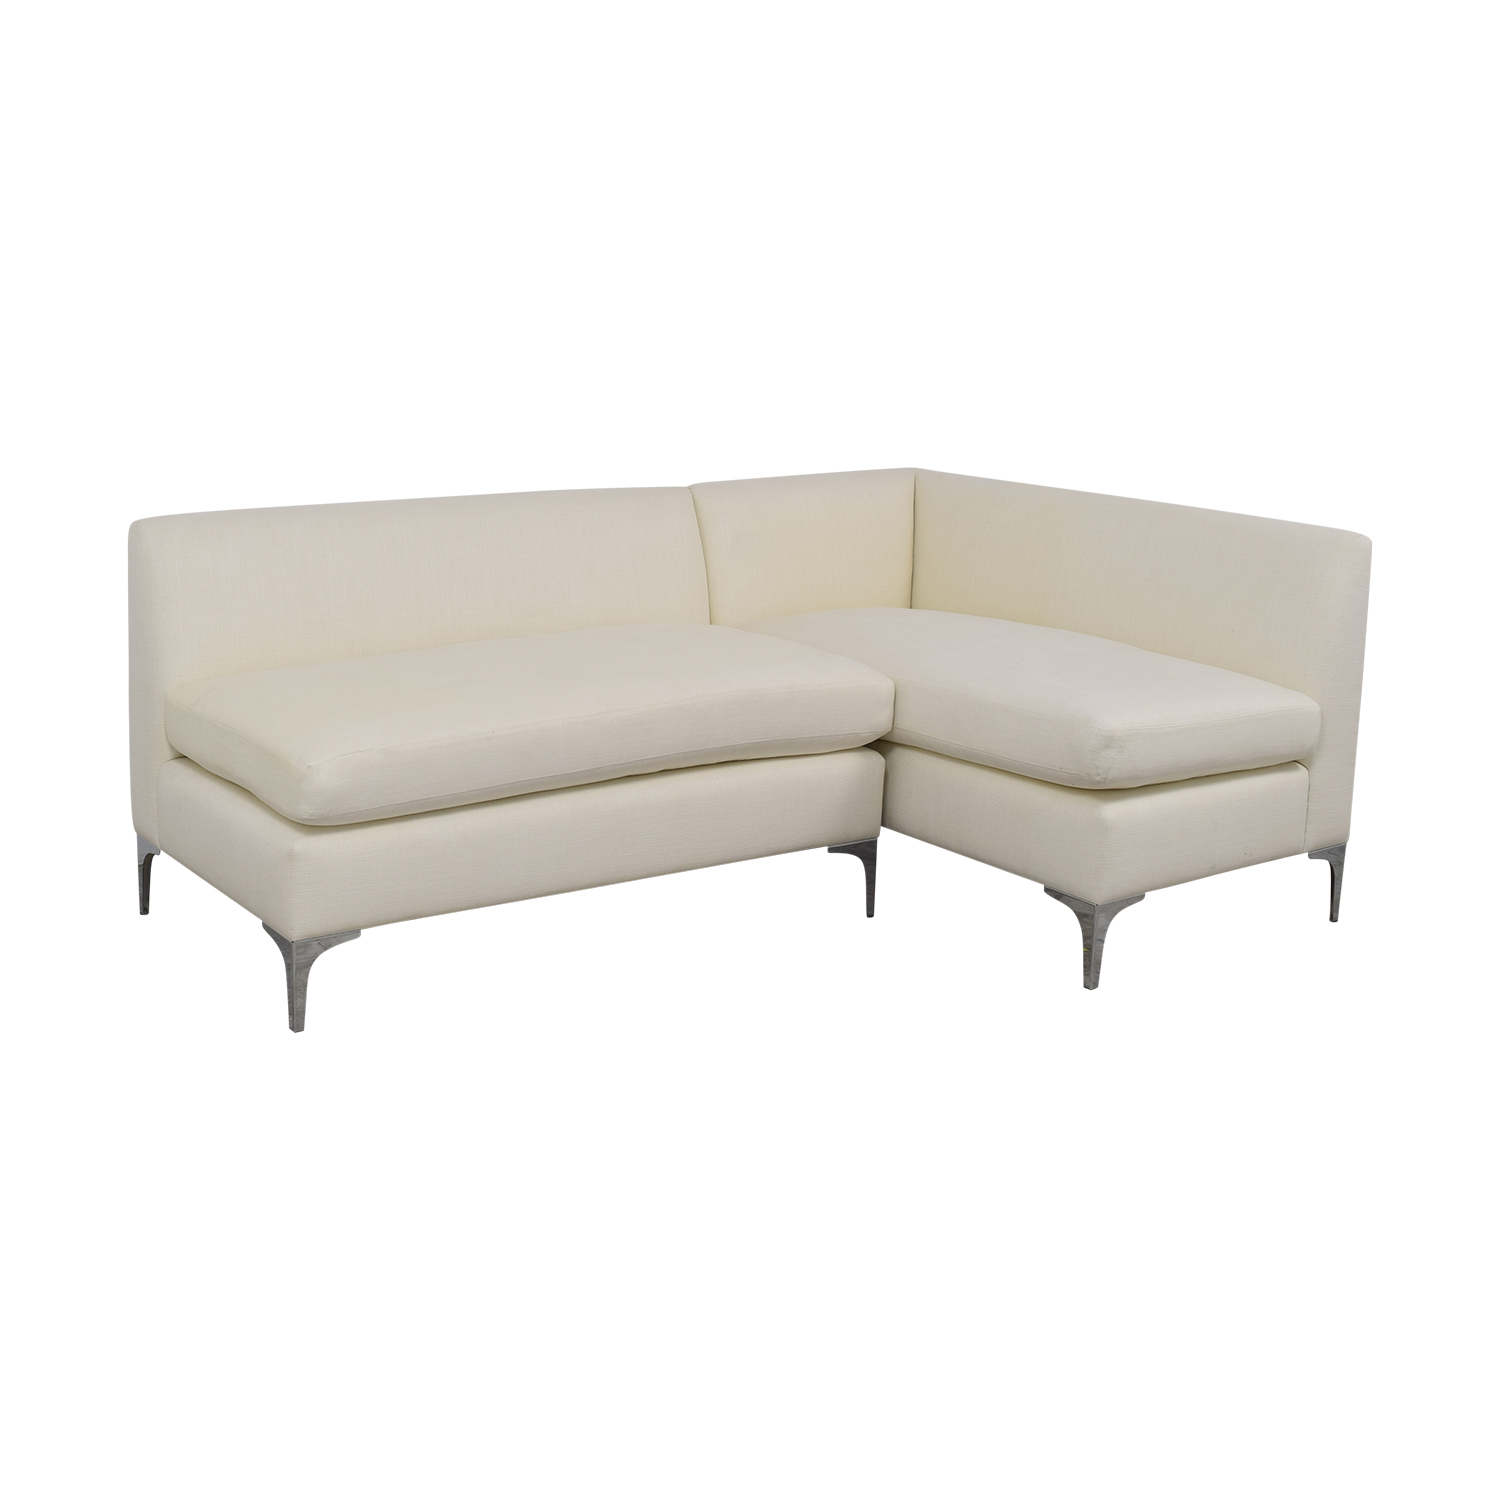 Paoli Paoli Custom Two-Piece Banquette coupon